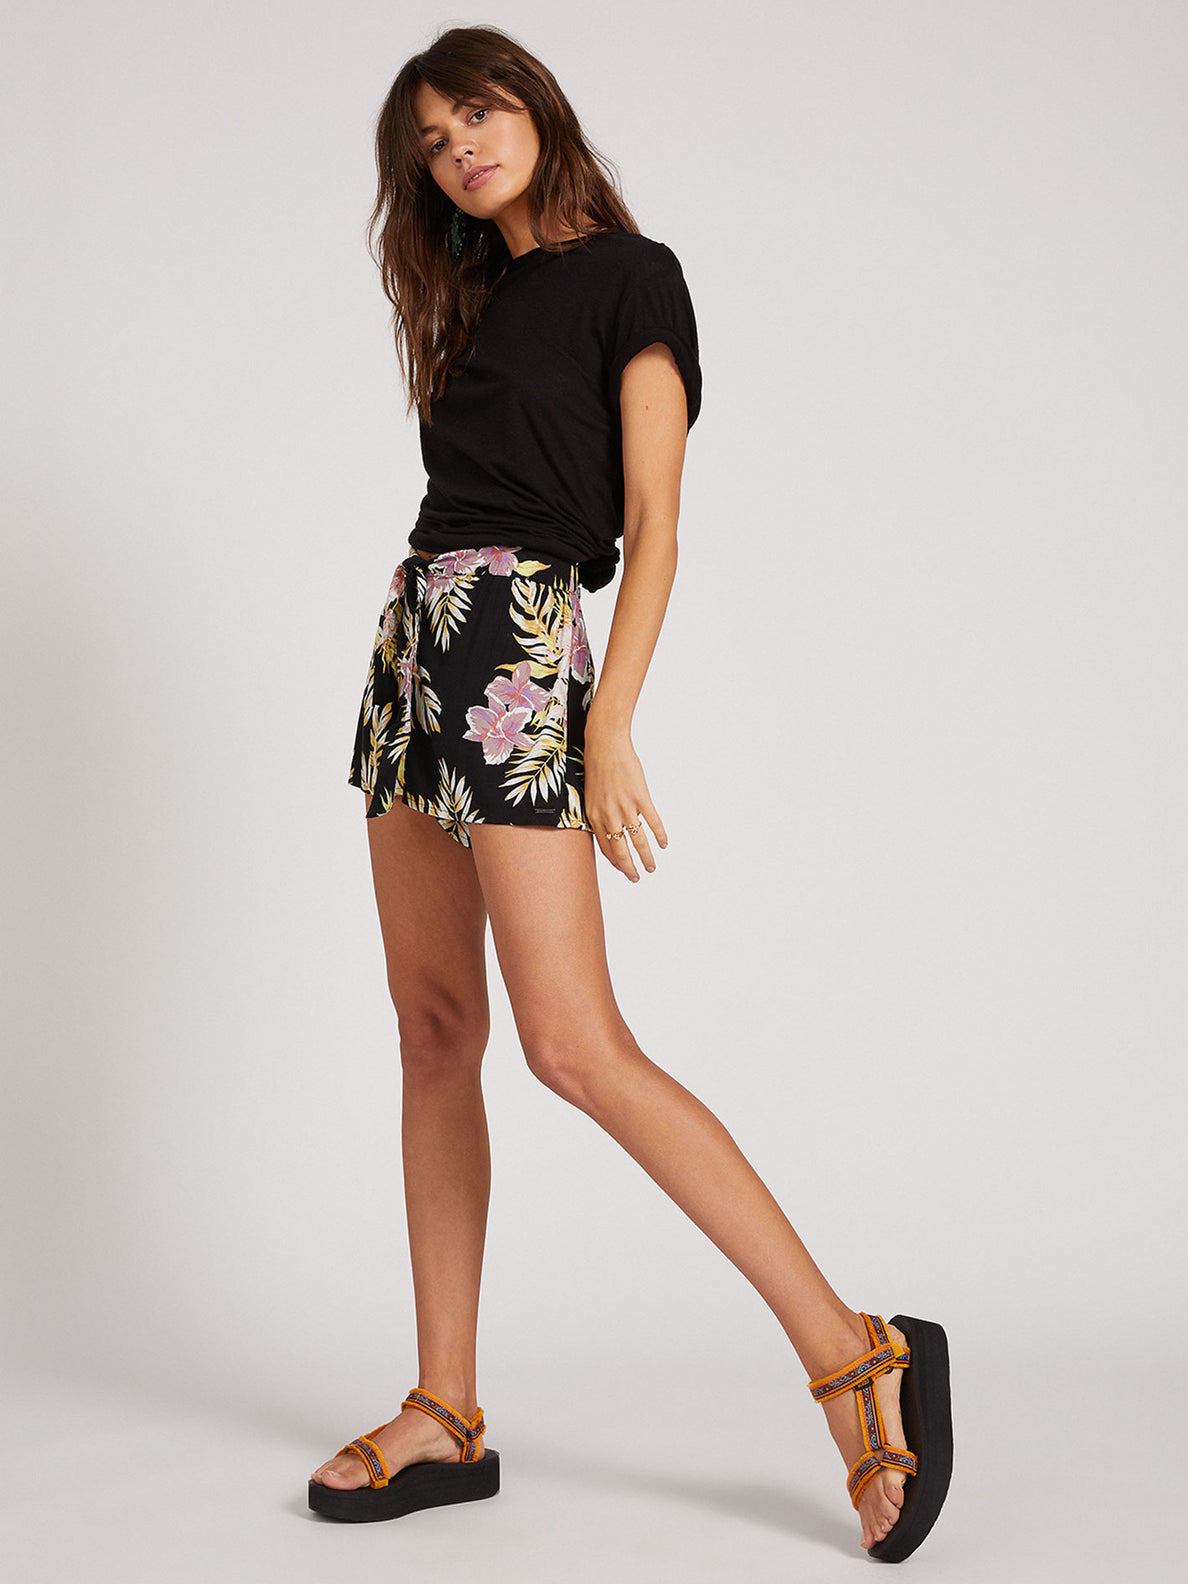 FORGET YOSELF SHORT - BLACK FLORAL PRINT (B0922000_BFP) [24]